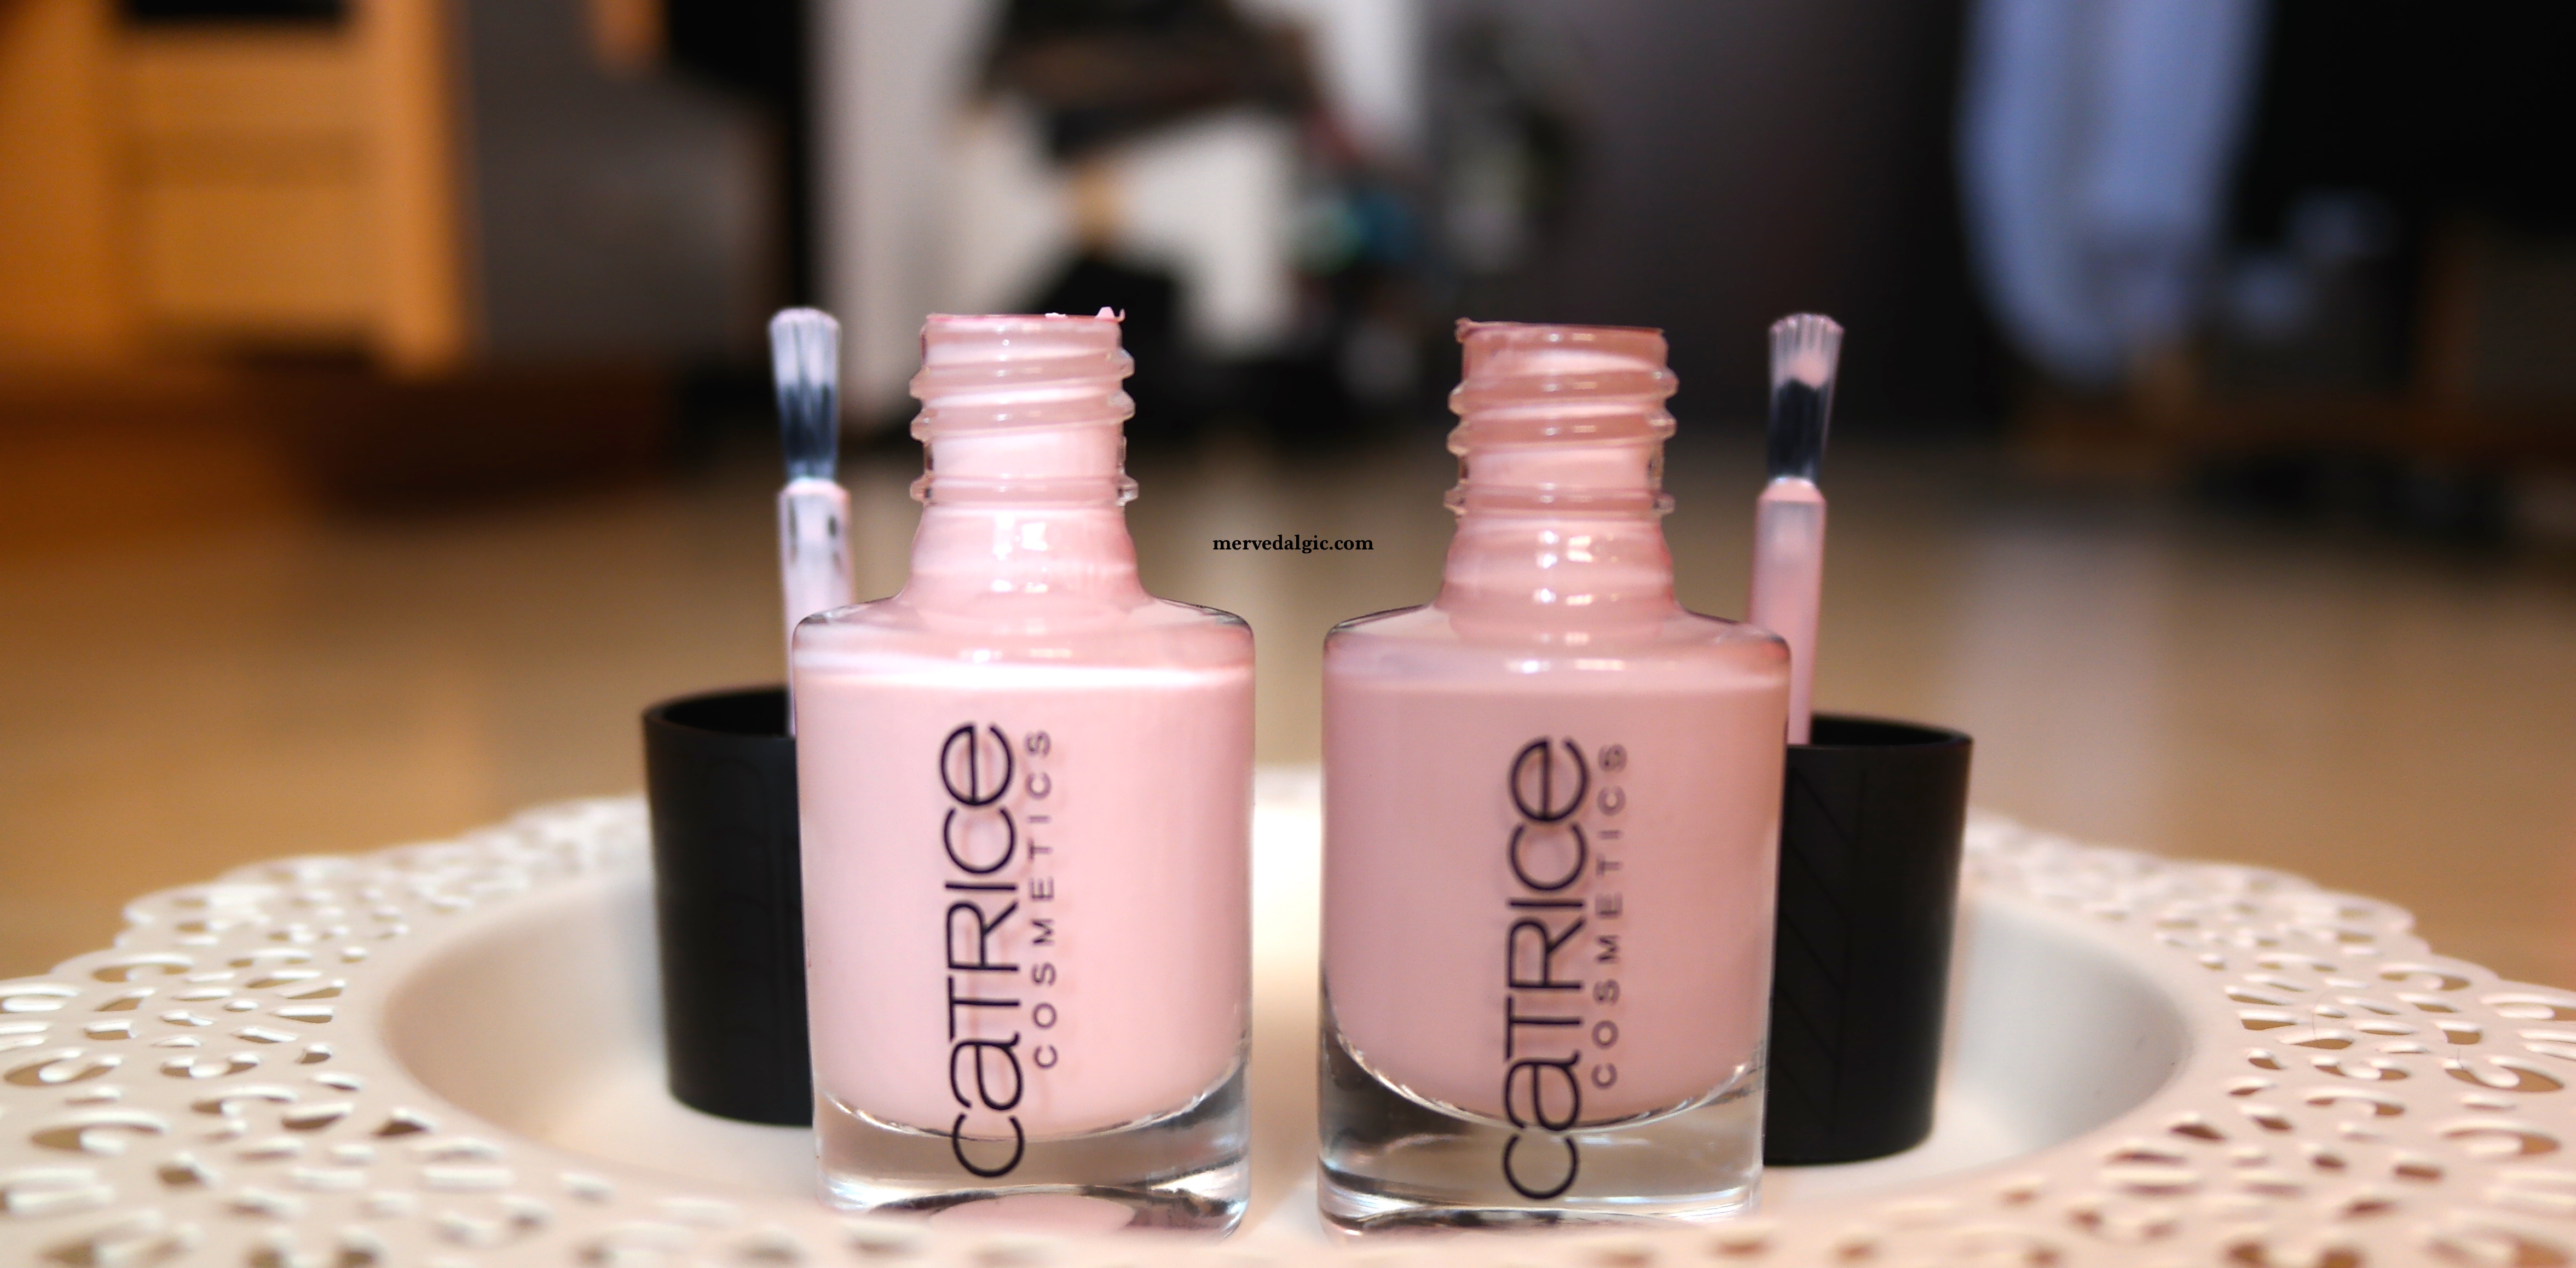 Nagellack(e) der Woche: CATRICE – Barely Pink & Taupe-less | Merve ...